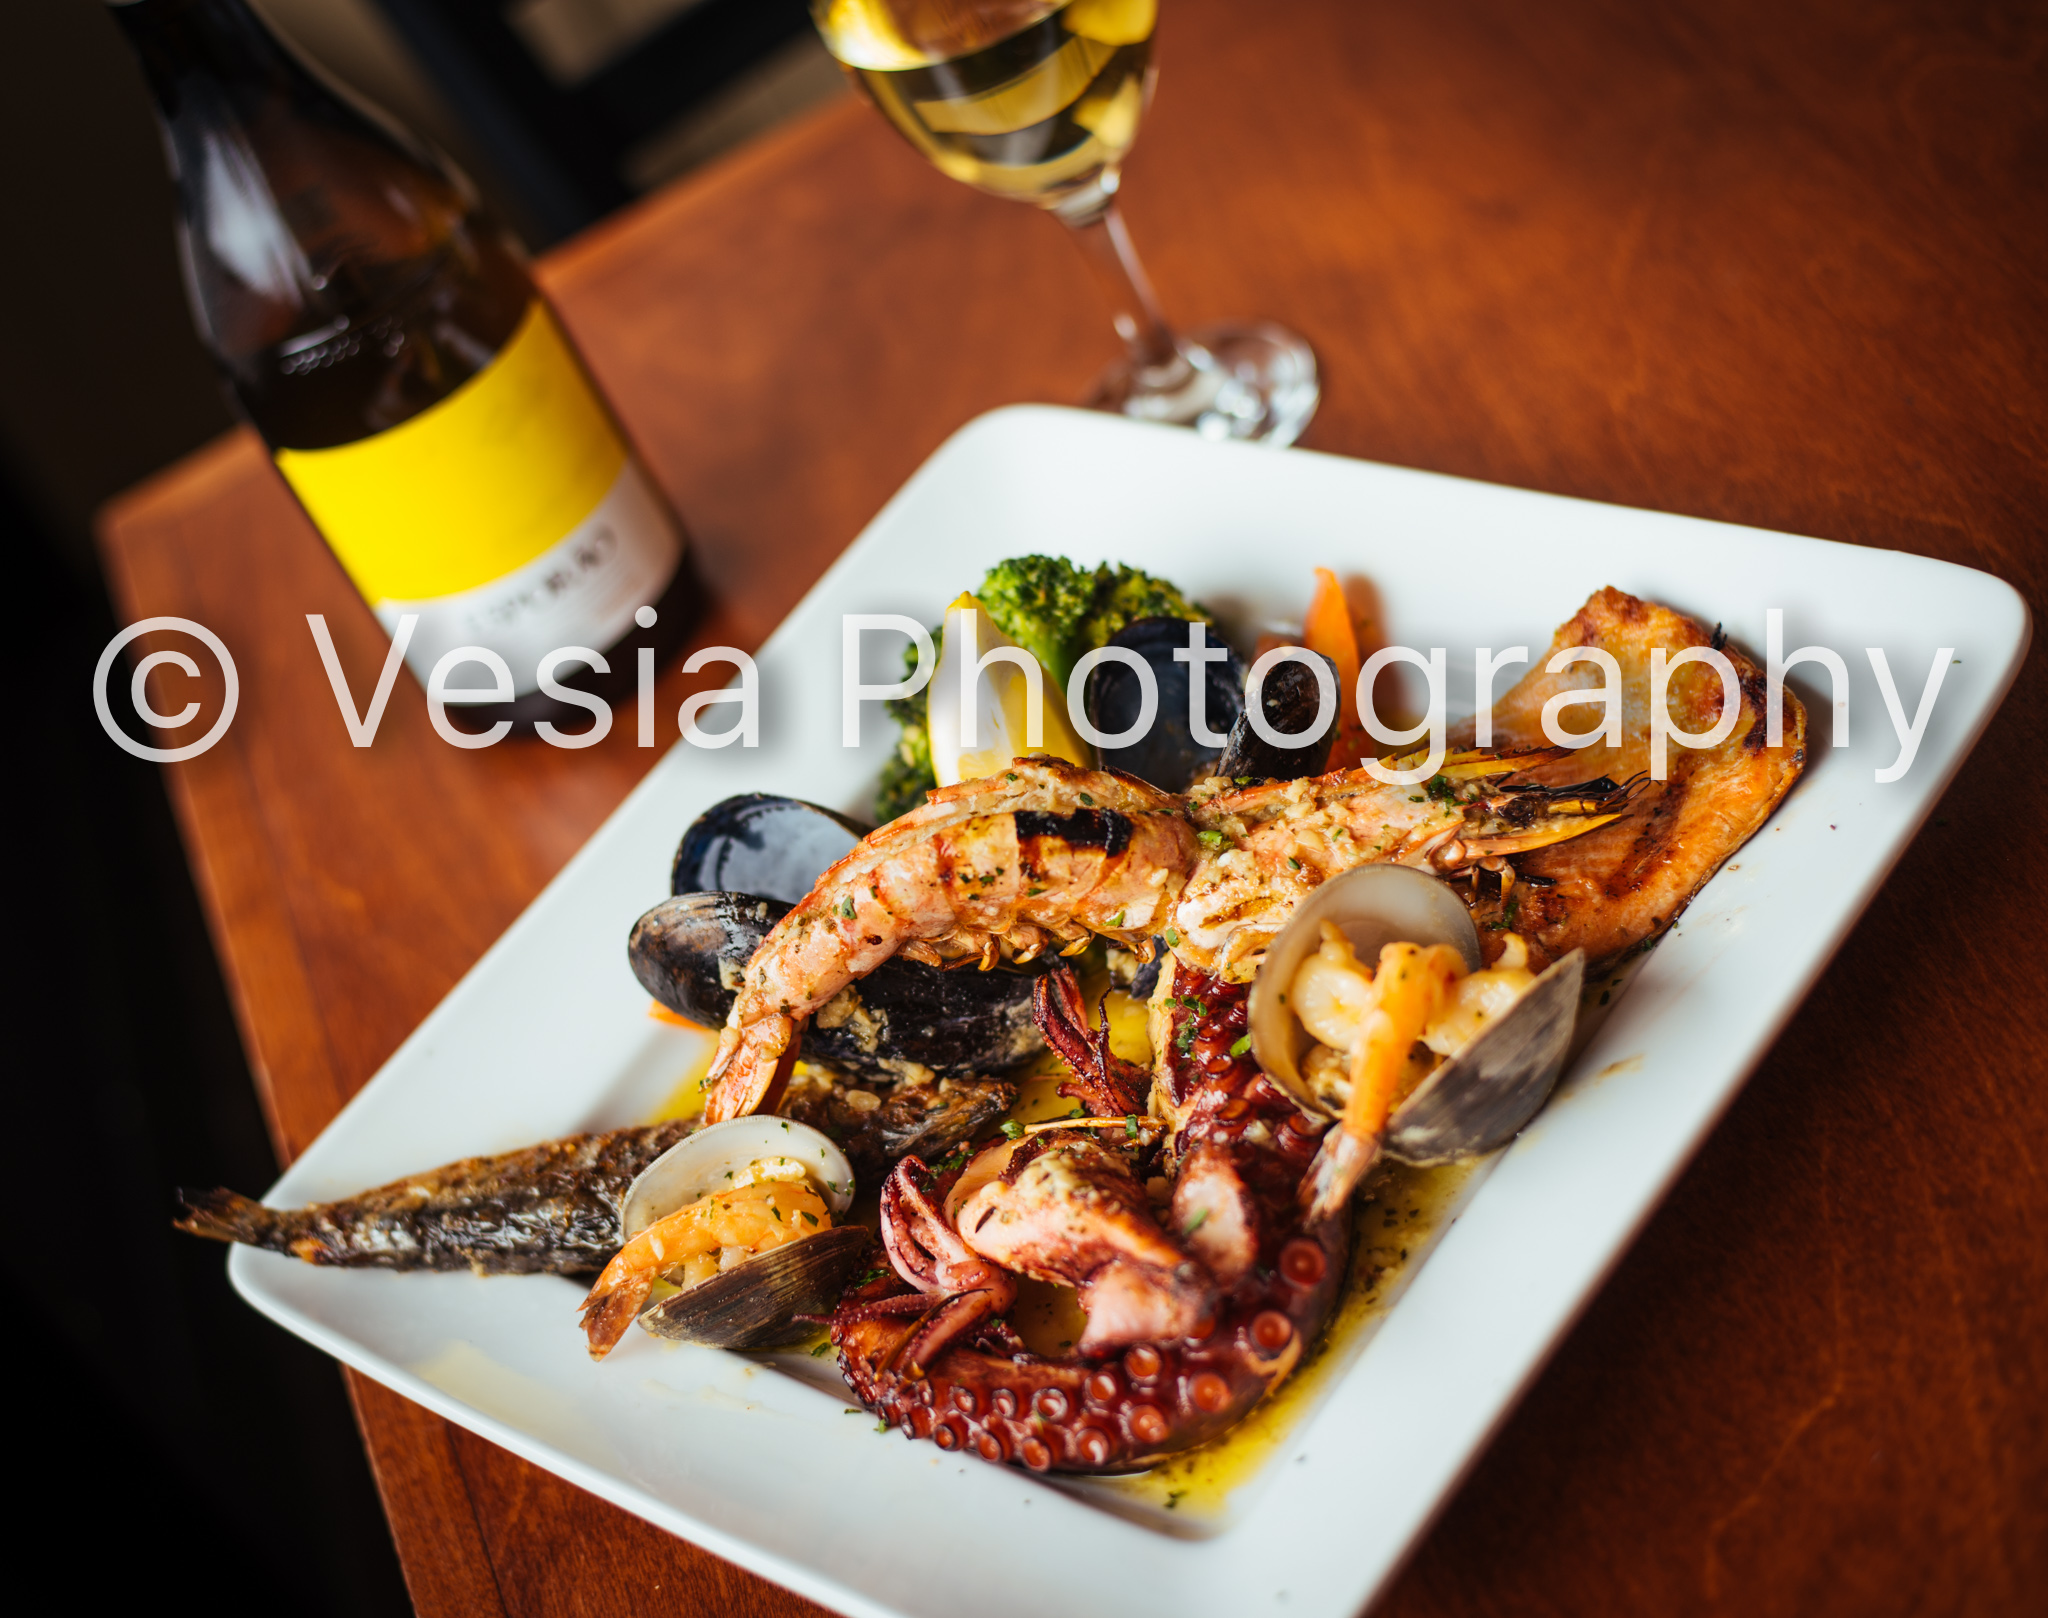 Impero_Grill_Proofs-26.jpg